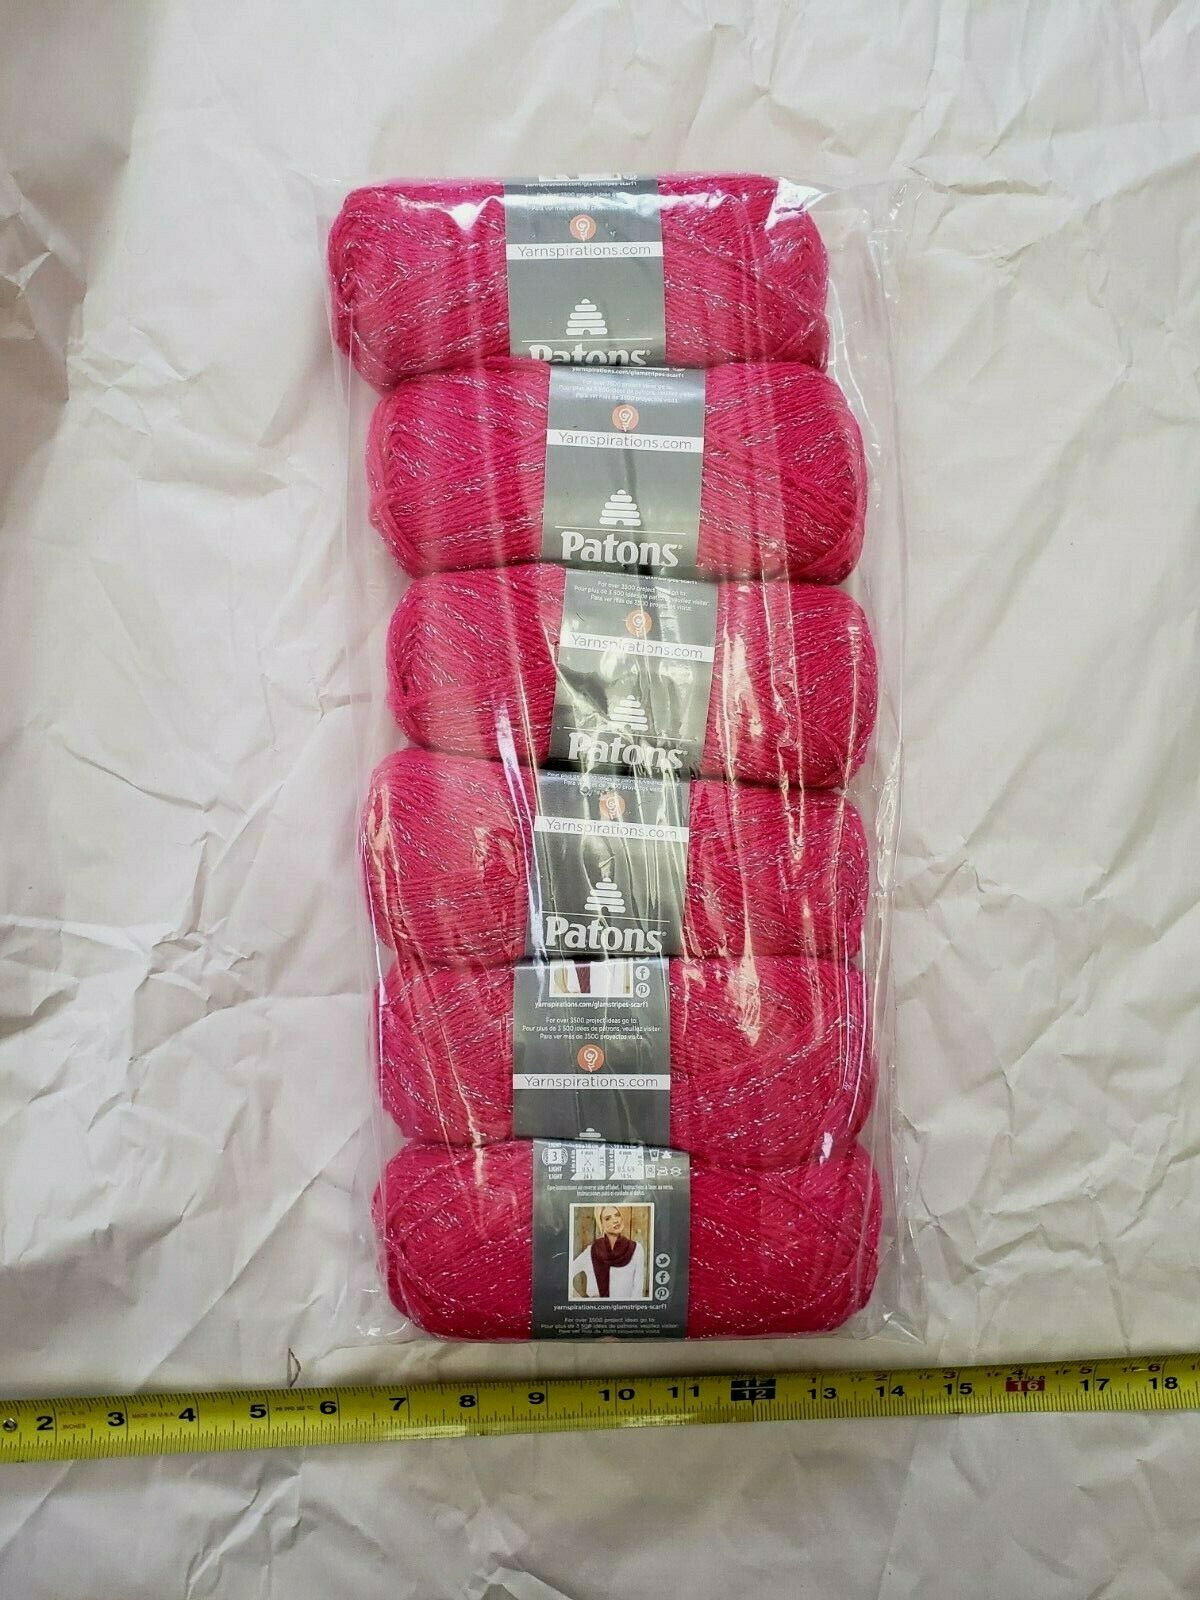 6 Skeins Of Patons Glam Stripes Yarn In Fuschia With Metalli